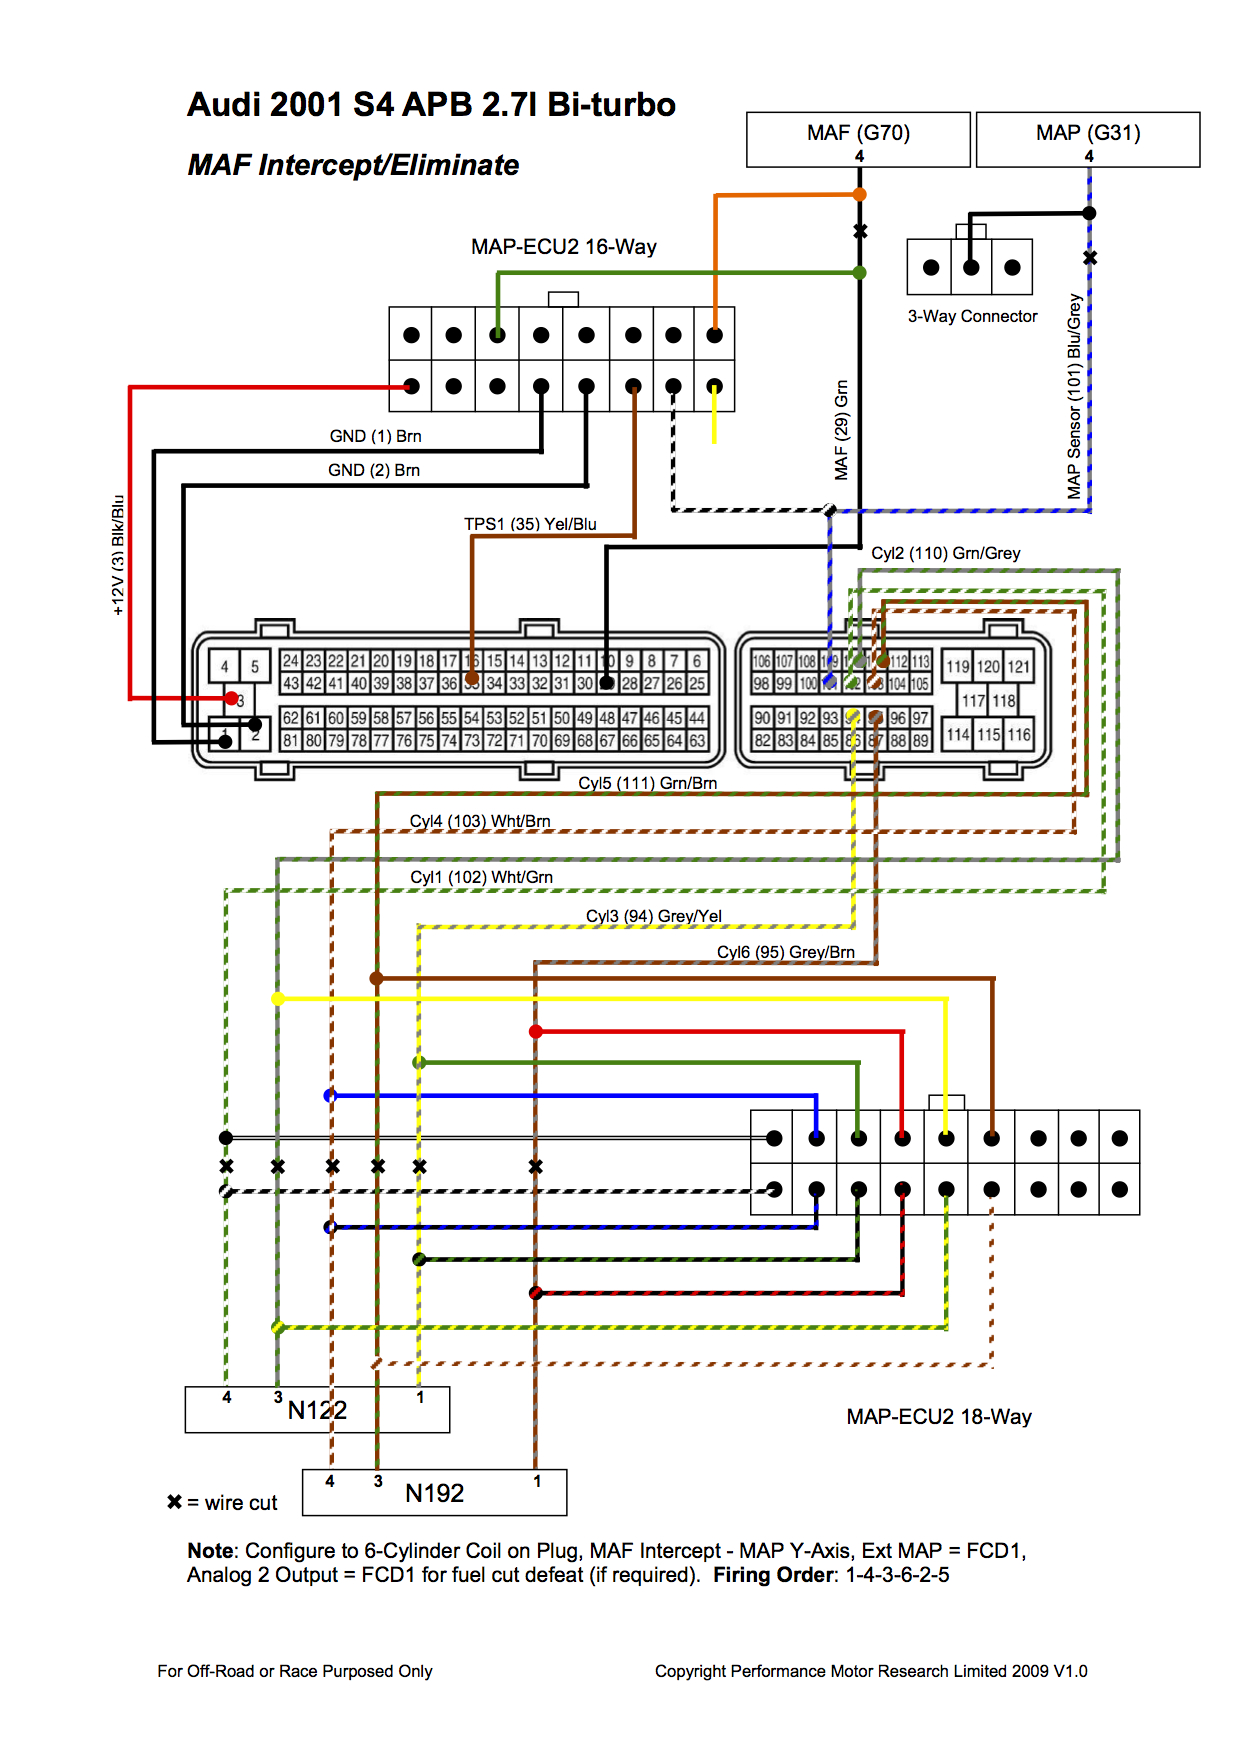 Wiring Diagram Mahindra 3510 - Wiring Diagram Liry on